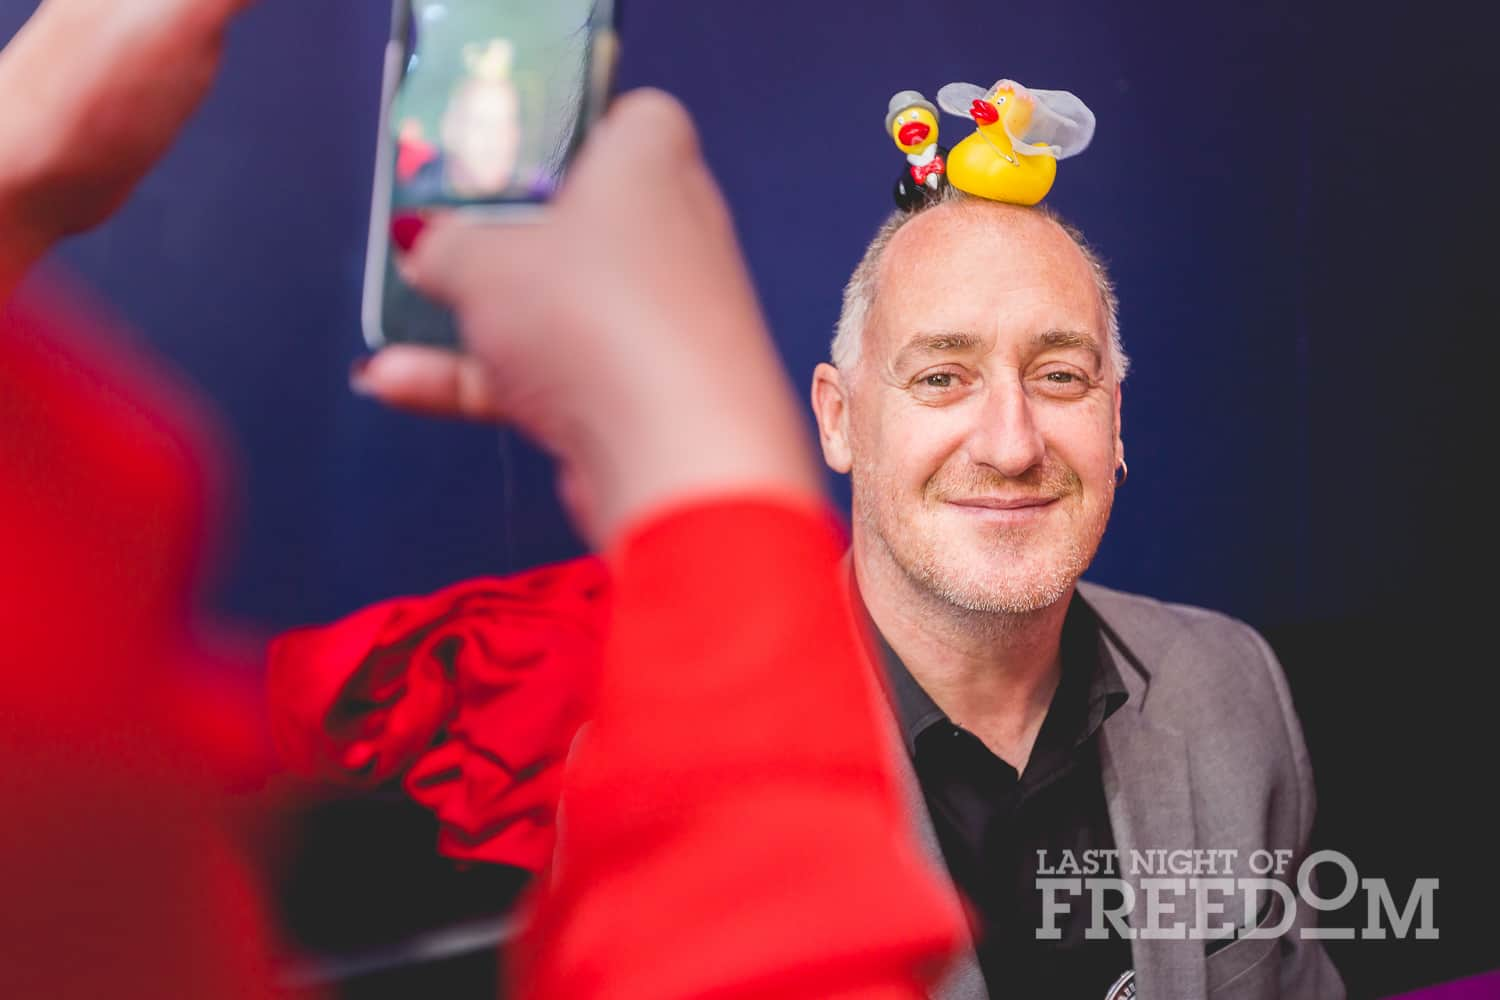 A woman's hands in the foreground, taking a picture of a man with two tiny ducks on his head